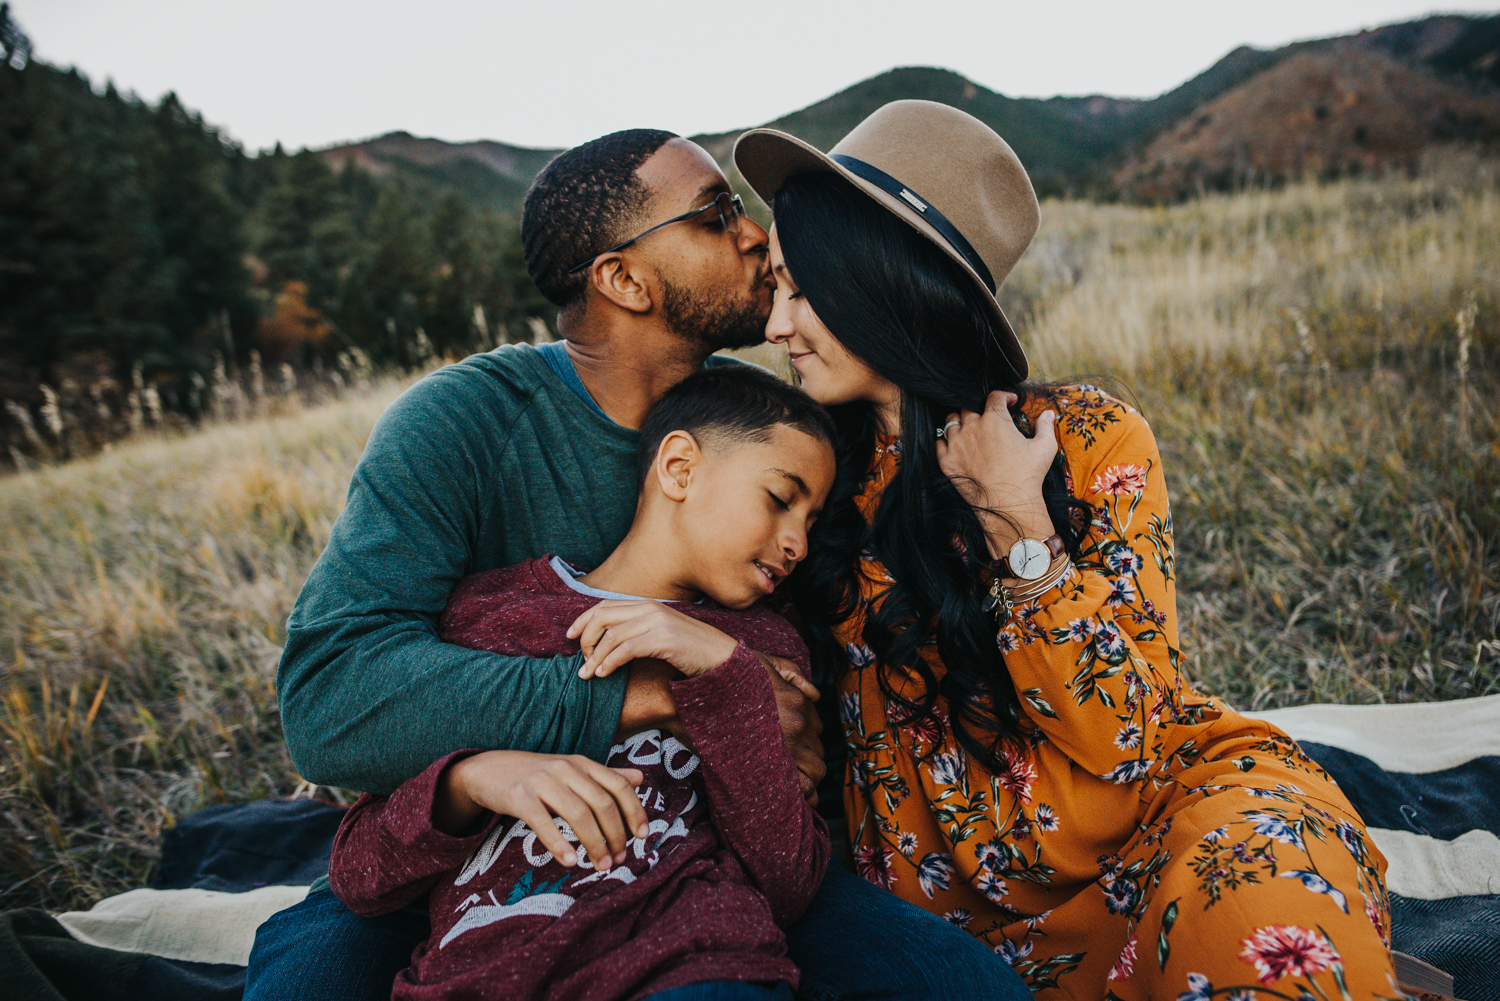 Sweet snuggles during fall family session in mountains of Colorado Springs.